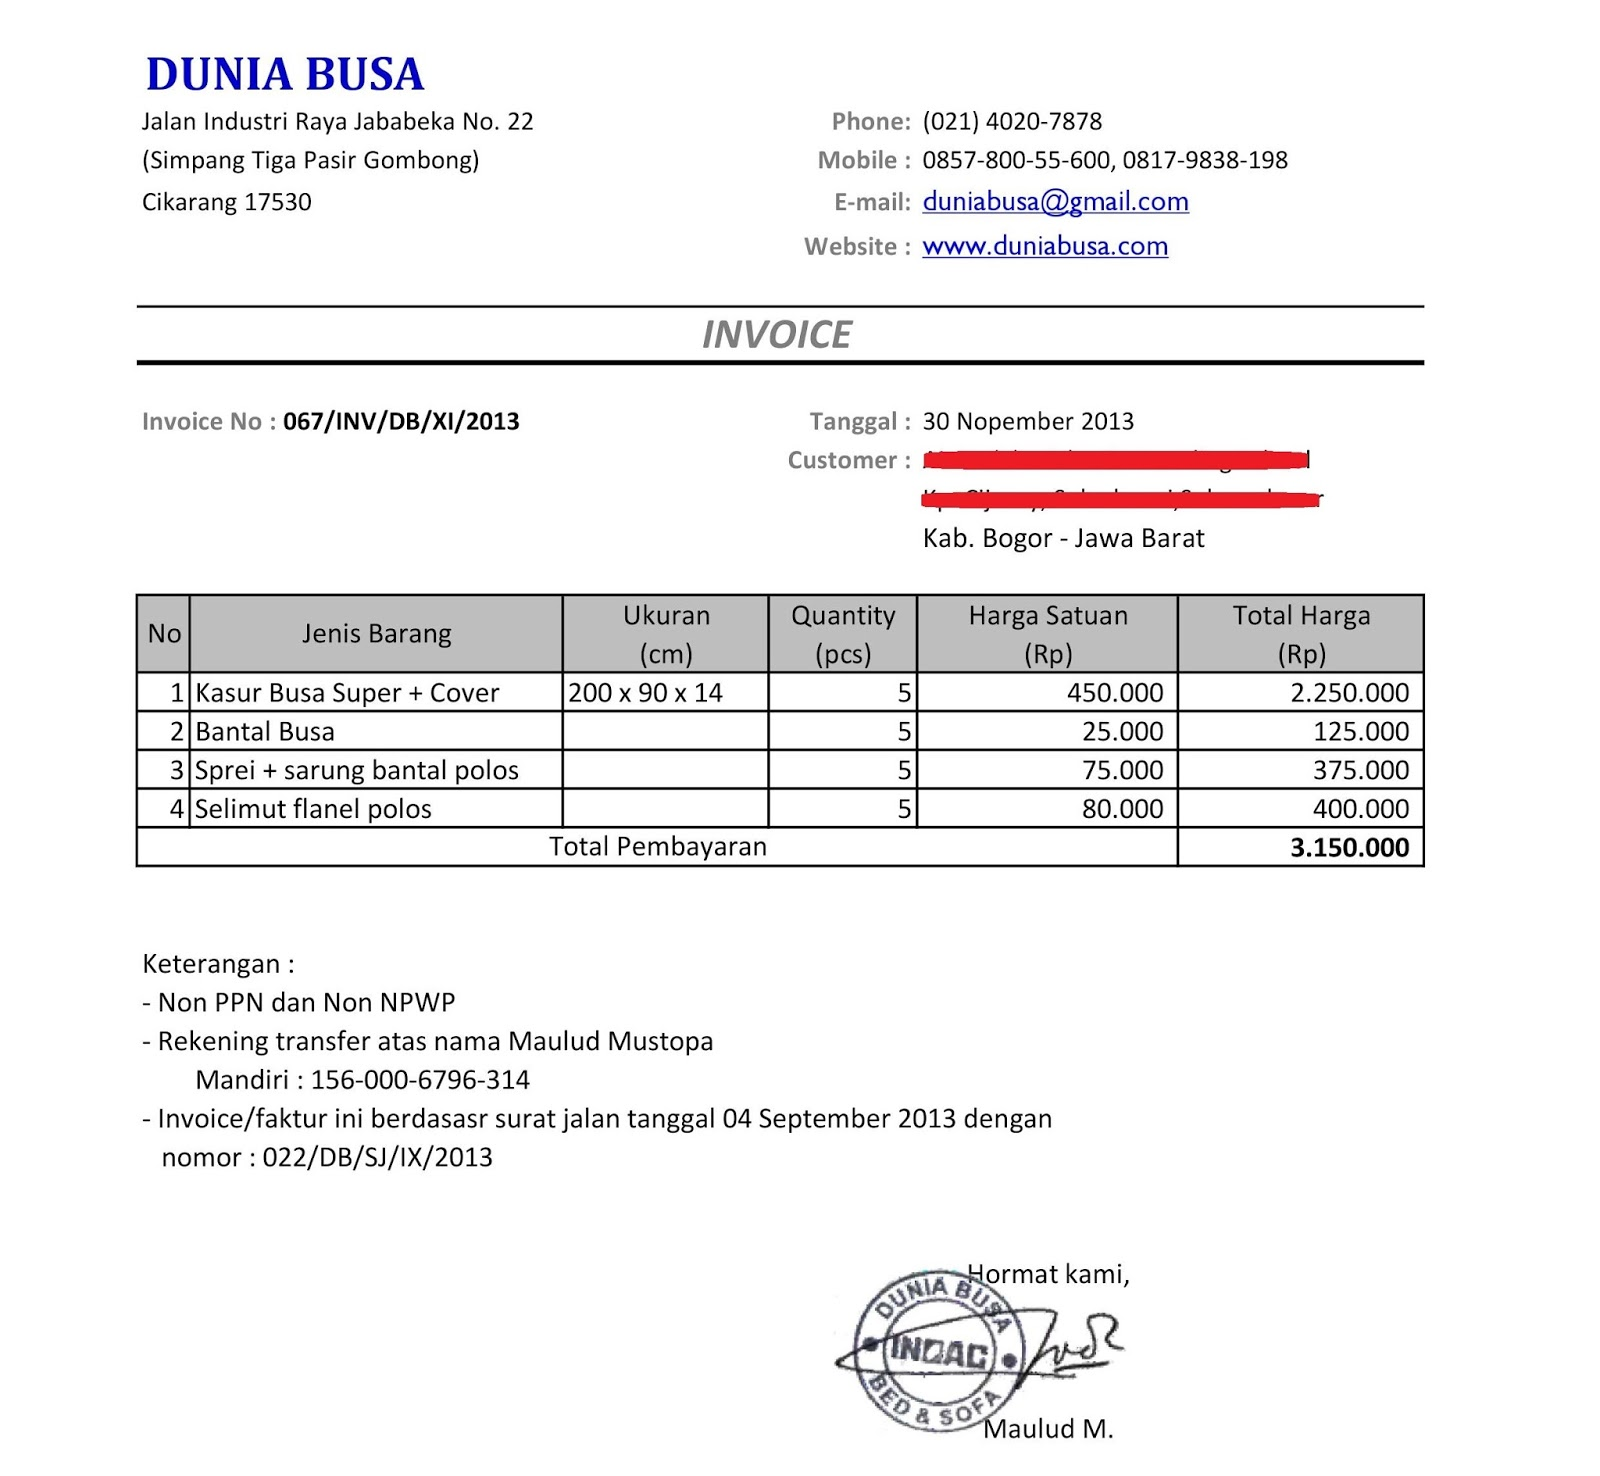 Centralasianshepherdus  Scenic Free Invoice Online  Create Invoice Online  Invoice Template  With Excellent Contoh Format Invoice Atau Surat Tagihan  Brankas Arsip  Free Invoice Online With Astounding Acura Rdx Invoice Also What Is Sales Invoice In Addition Business Invoice Template Word And Copy Of Blank Invoice As Well As Freelance Designer Invoice Additionally Invoice Purchase Order From Sklepco With Centralasianshepherdus  Excellent Free Invoice Online  Create Invoice Online  Invoice Template  With Astounding Contoh Format Invoice Atau Surat Tagihan  Brankas Arsip  Free Invoice Online And Scenic Acura Rdx Invoice Also What Is Sales Invoice In Addition Business Invoice Template Word From Sklepco